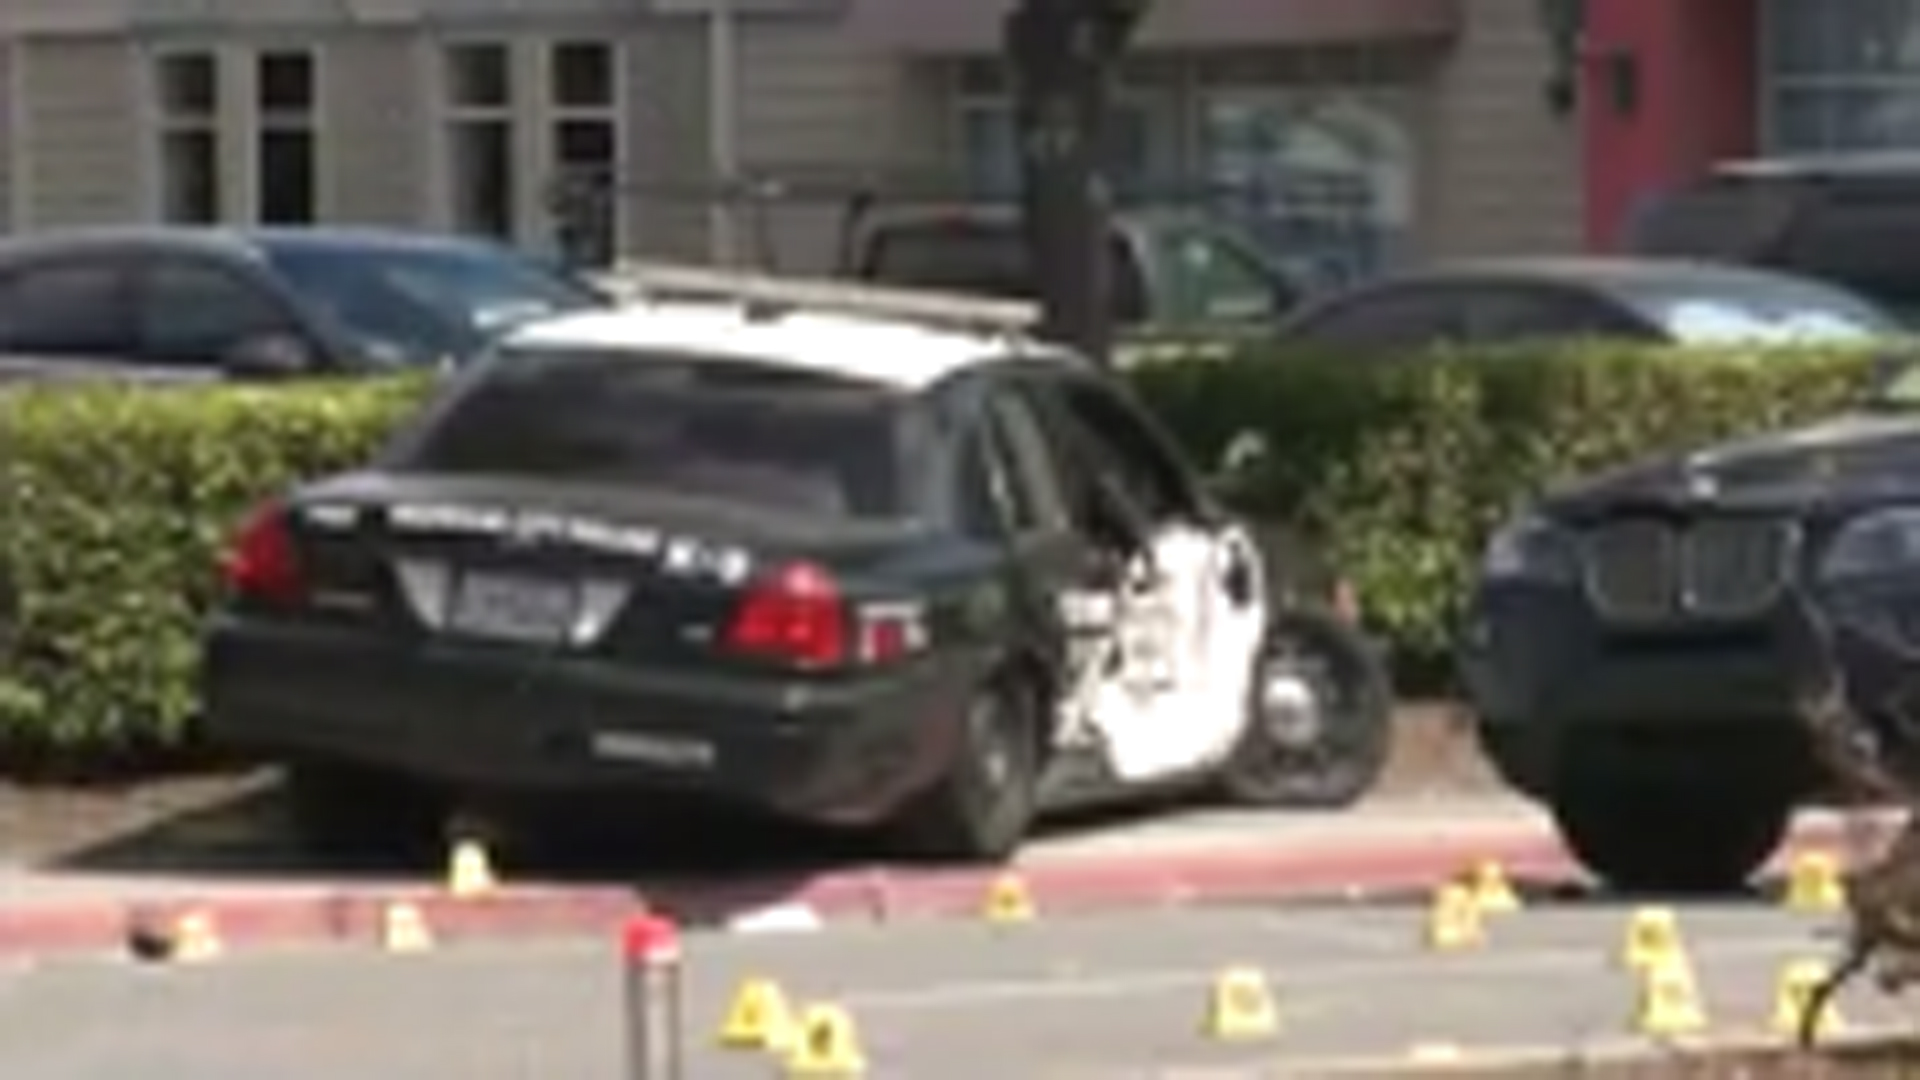 A police cruiser hit a pedestrian after veering out of control in Redwood City on Sept. 18, 2019. (Credit: KPIX)